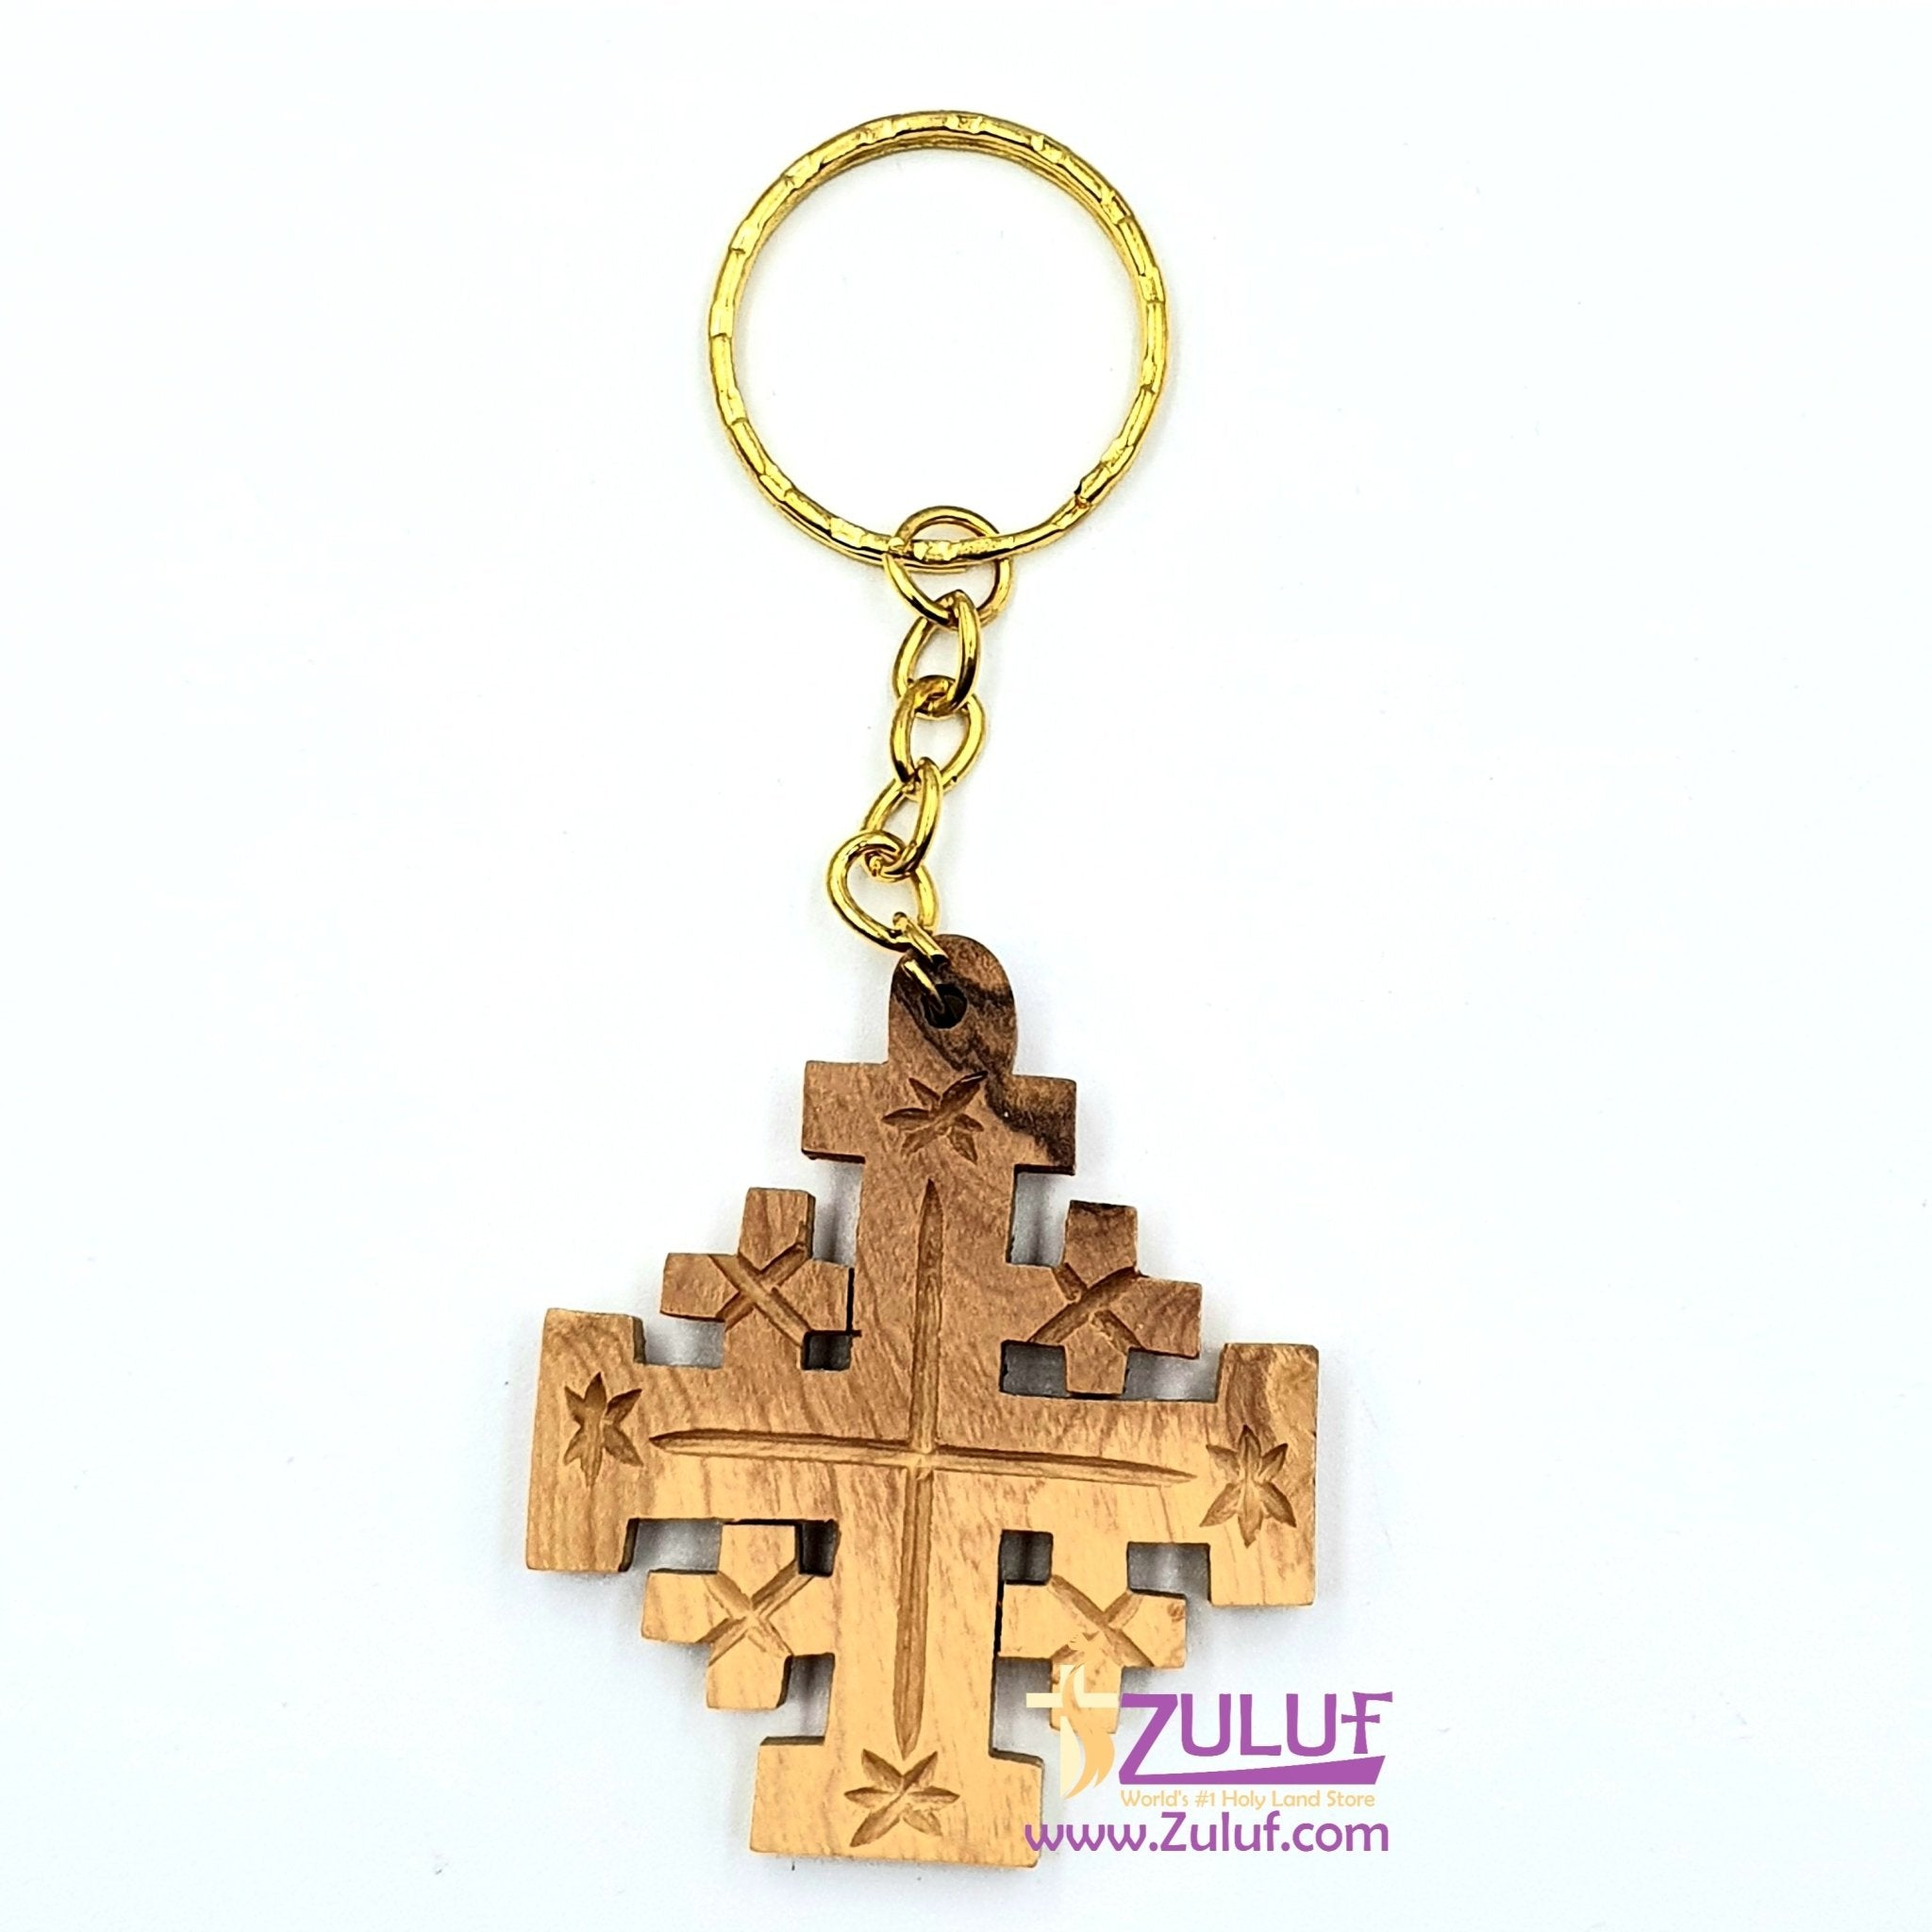 Jerusalem cross olive wood hand made key chain KC206 - Zuluf